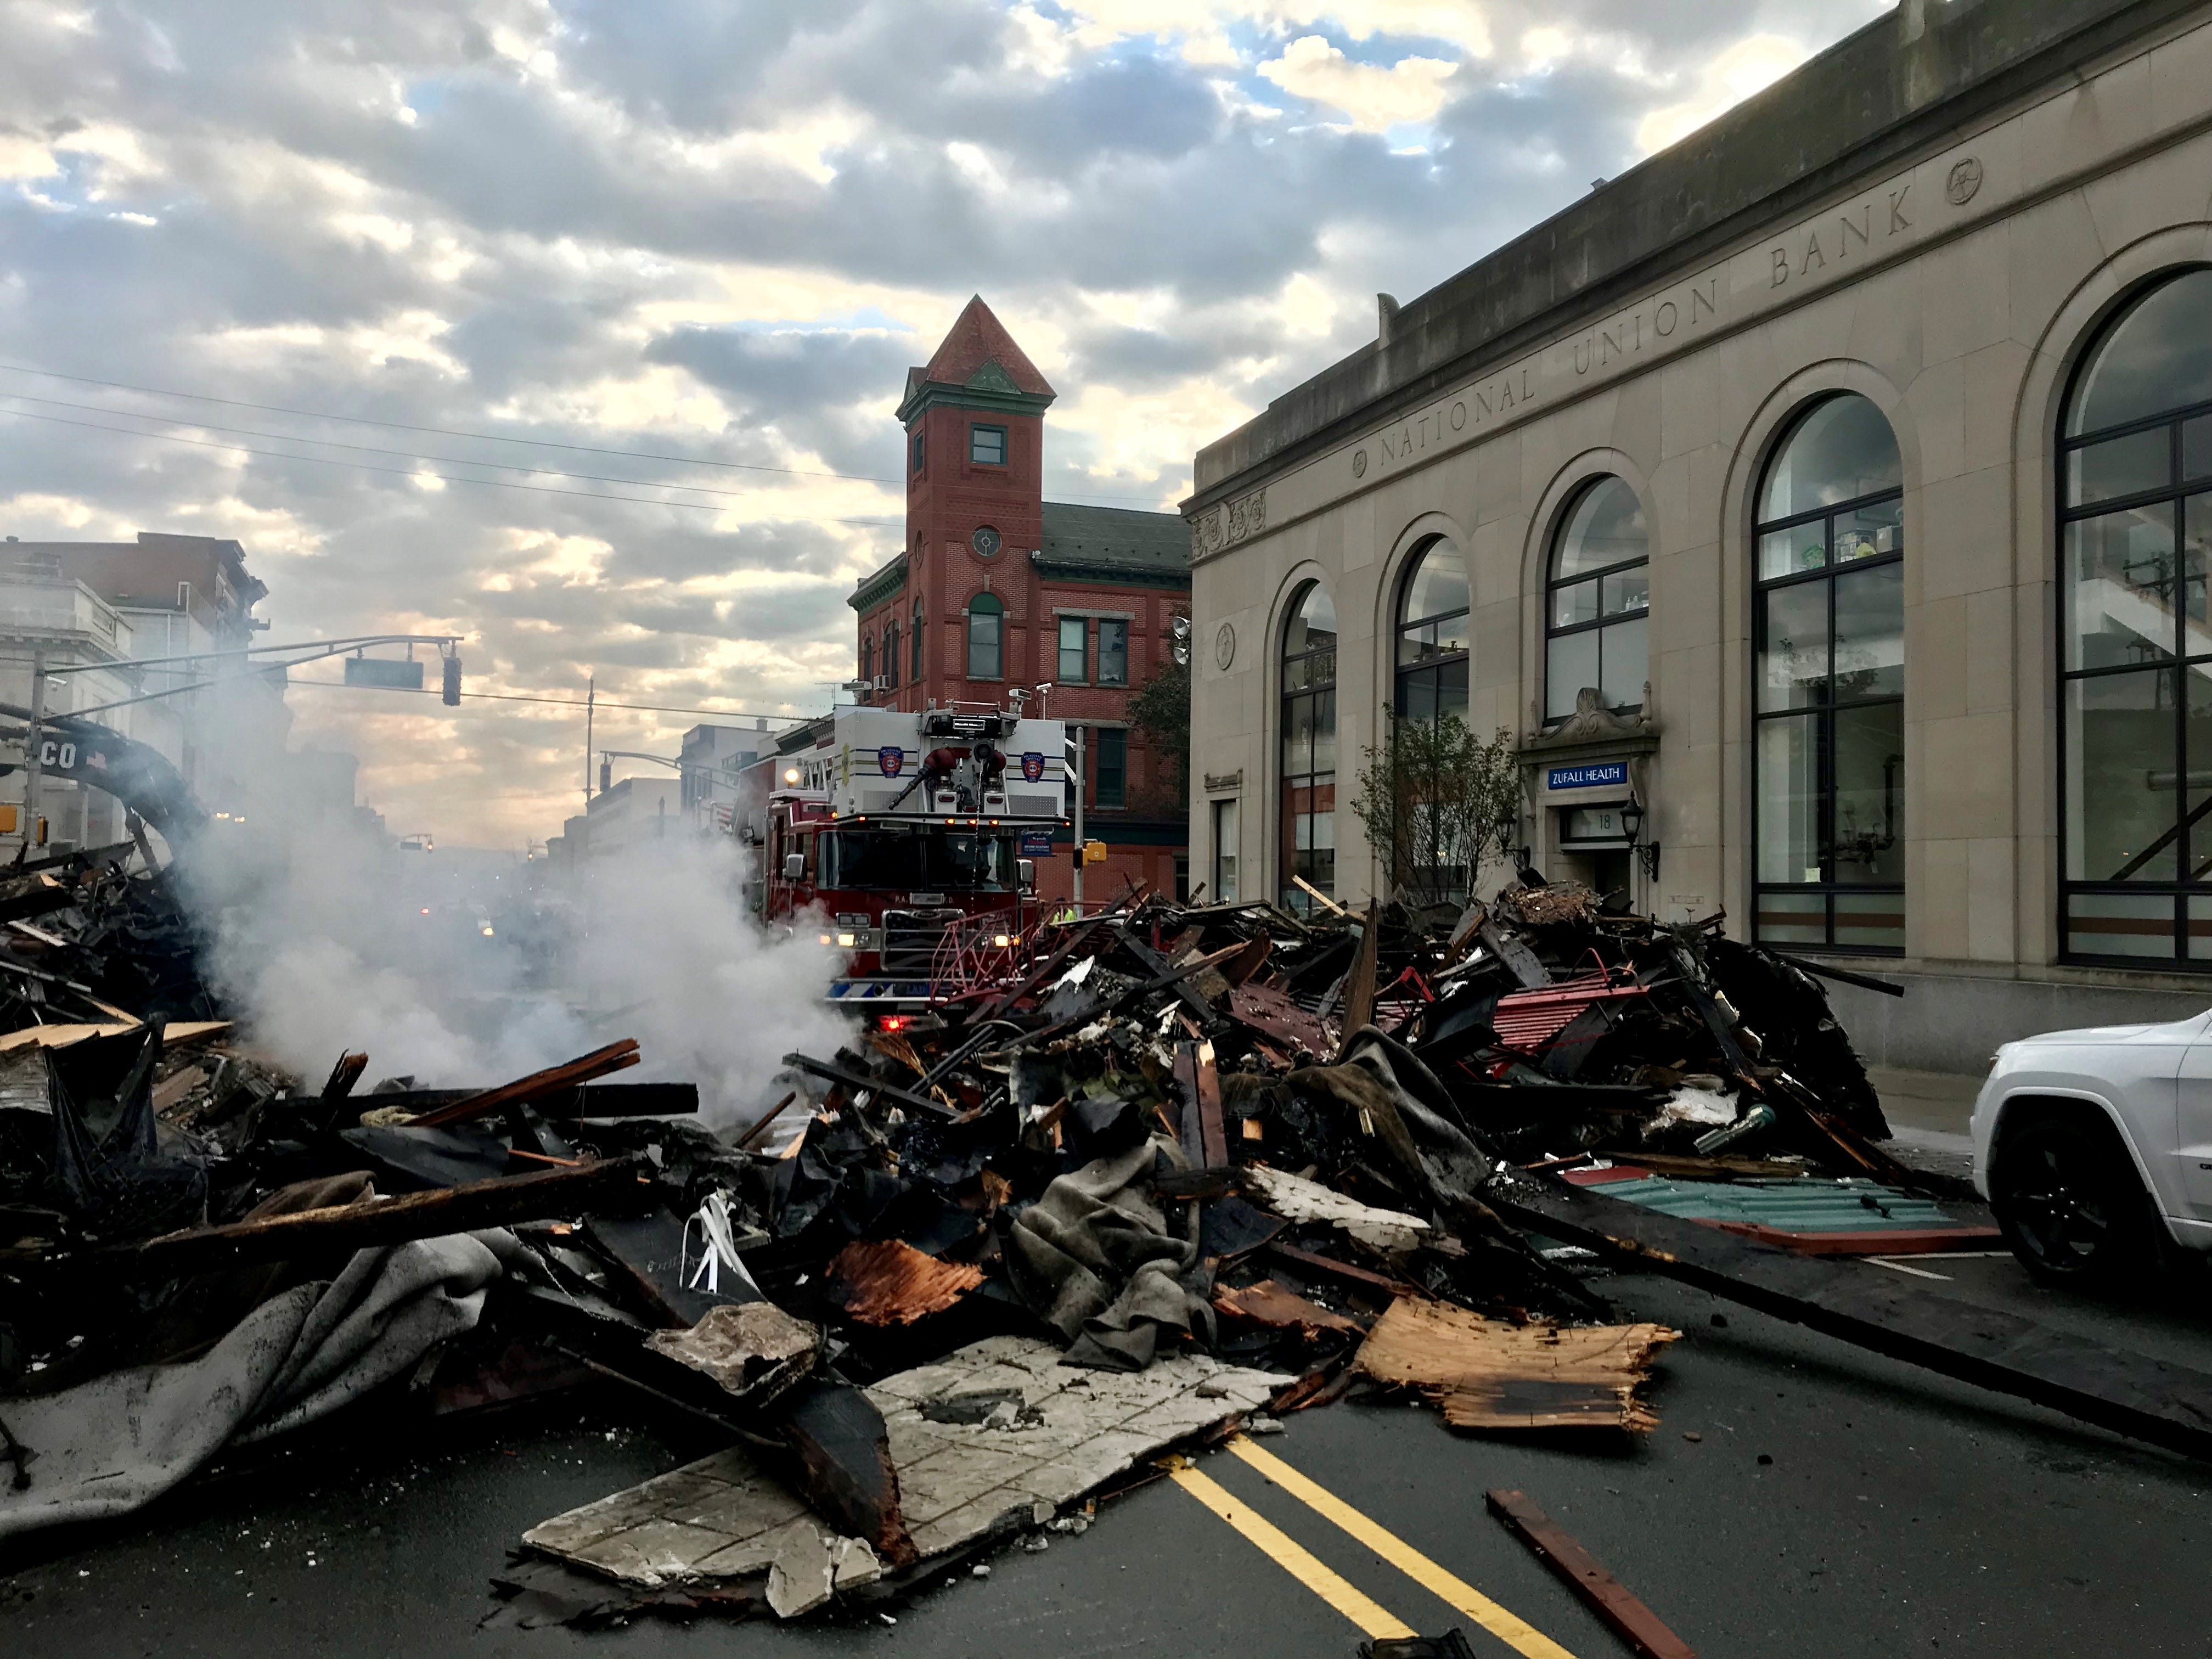 Zufall Health Center, located in the historic former National Union Bank Building in Dover, is closed on Tuesday, Oct. 23, 2018, due to a fire that collapsed a building across Blackwell Street the day before. Debris from the collapse is seen here on Blackwell Street.